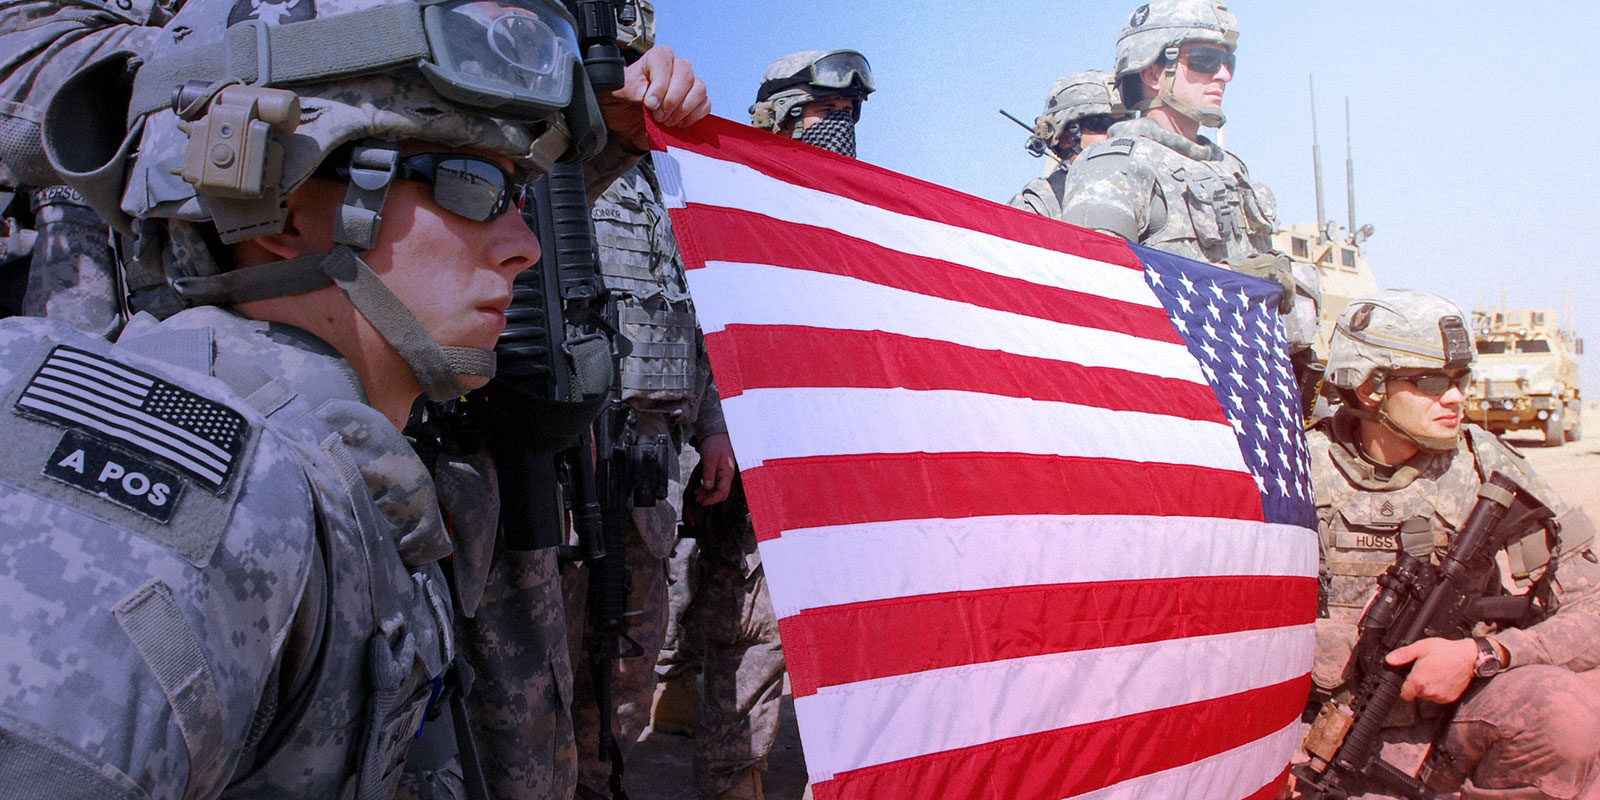 Soldiers holding American flag